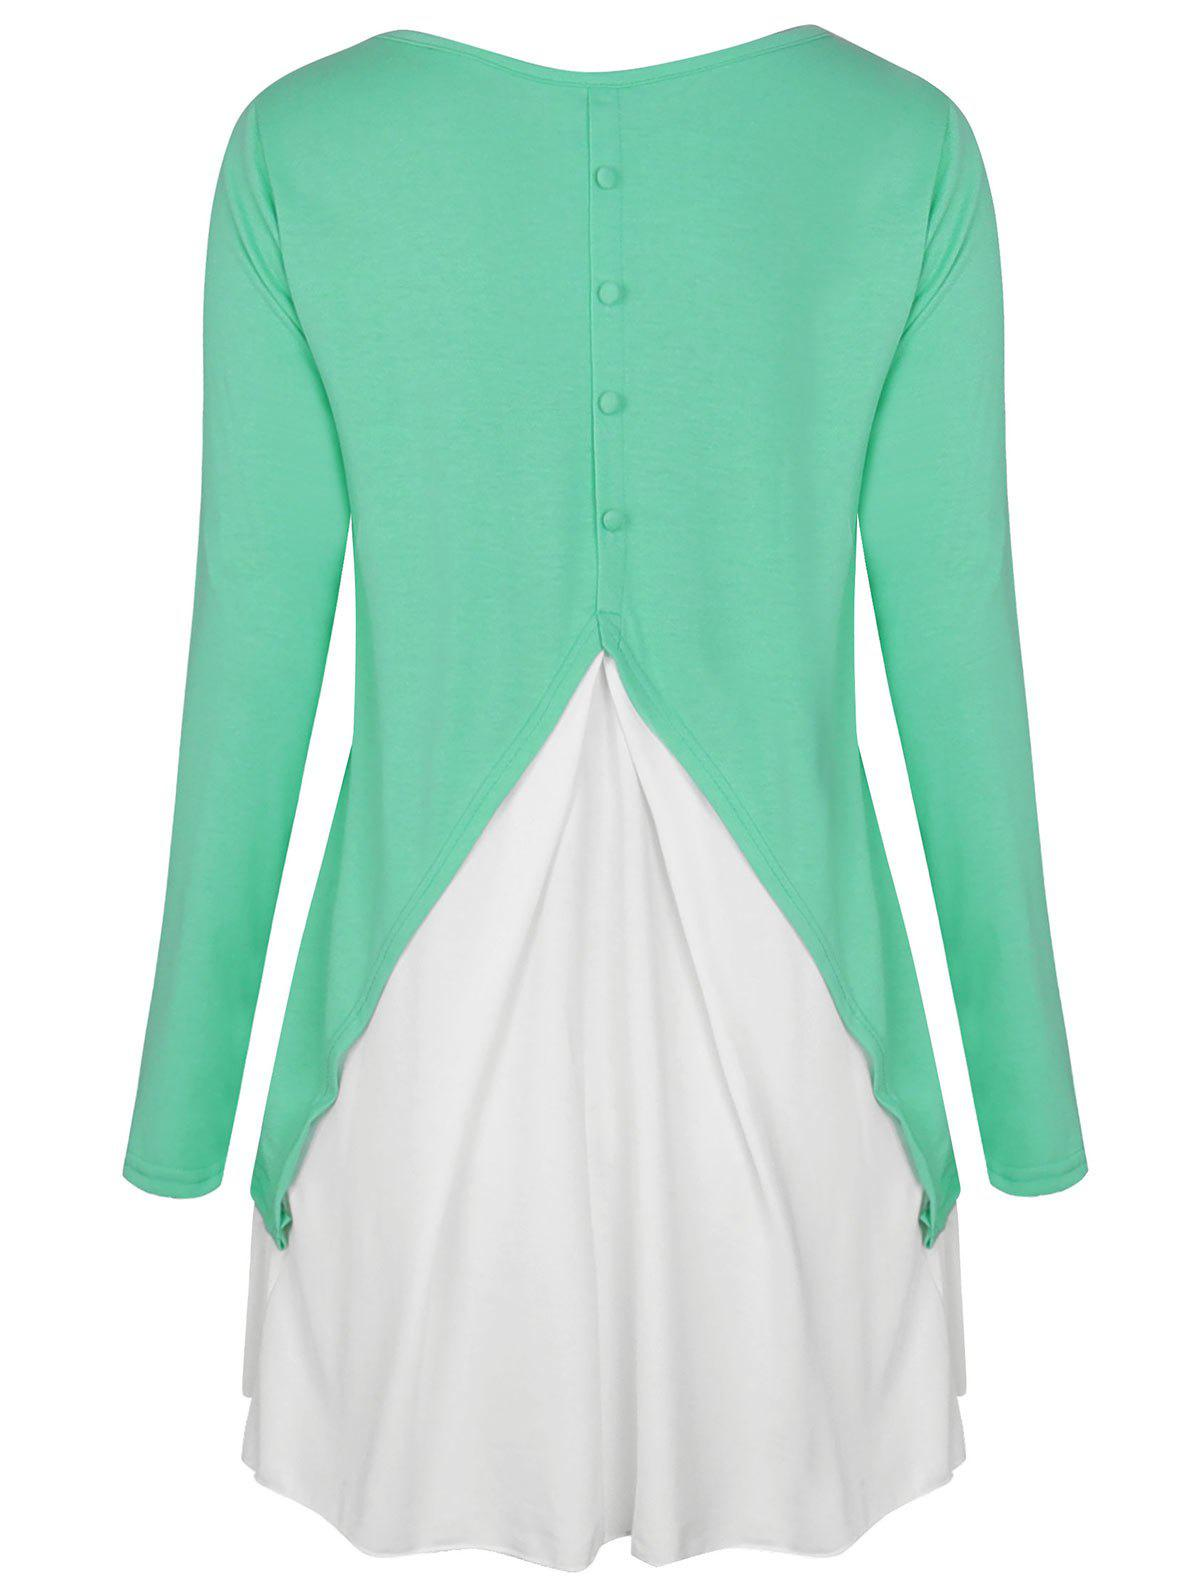 Affordable Two Tone Button Embellished High Low T-shirt